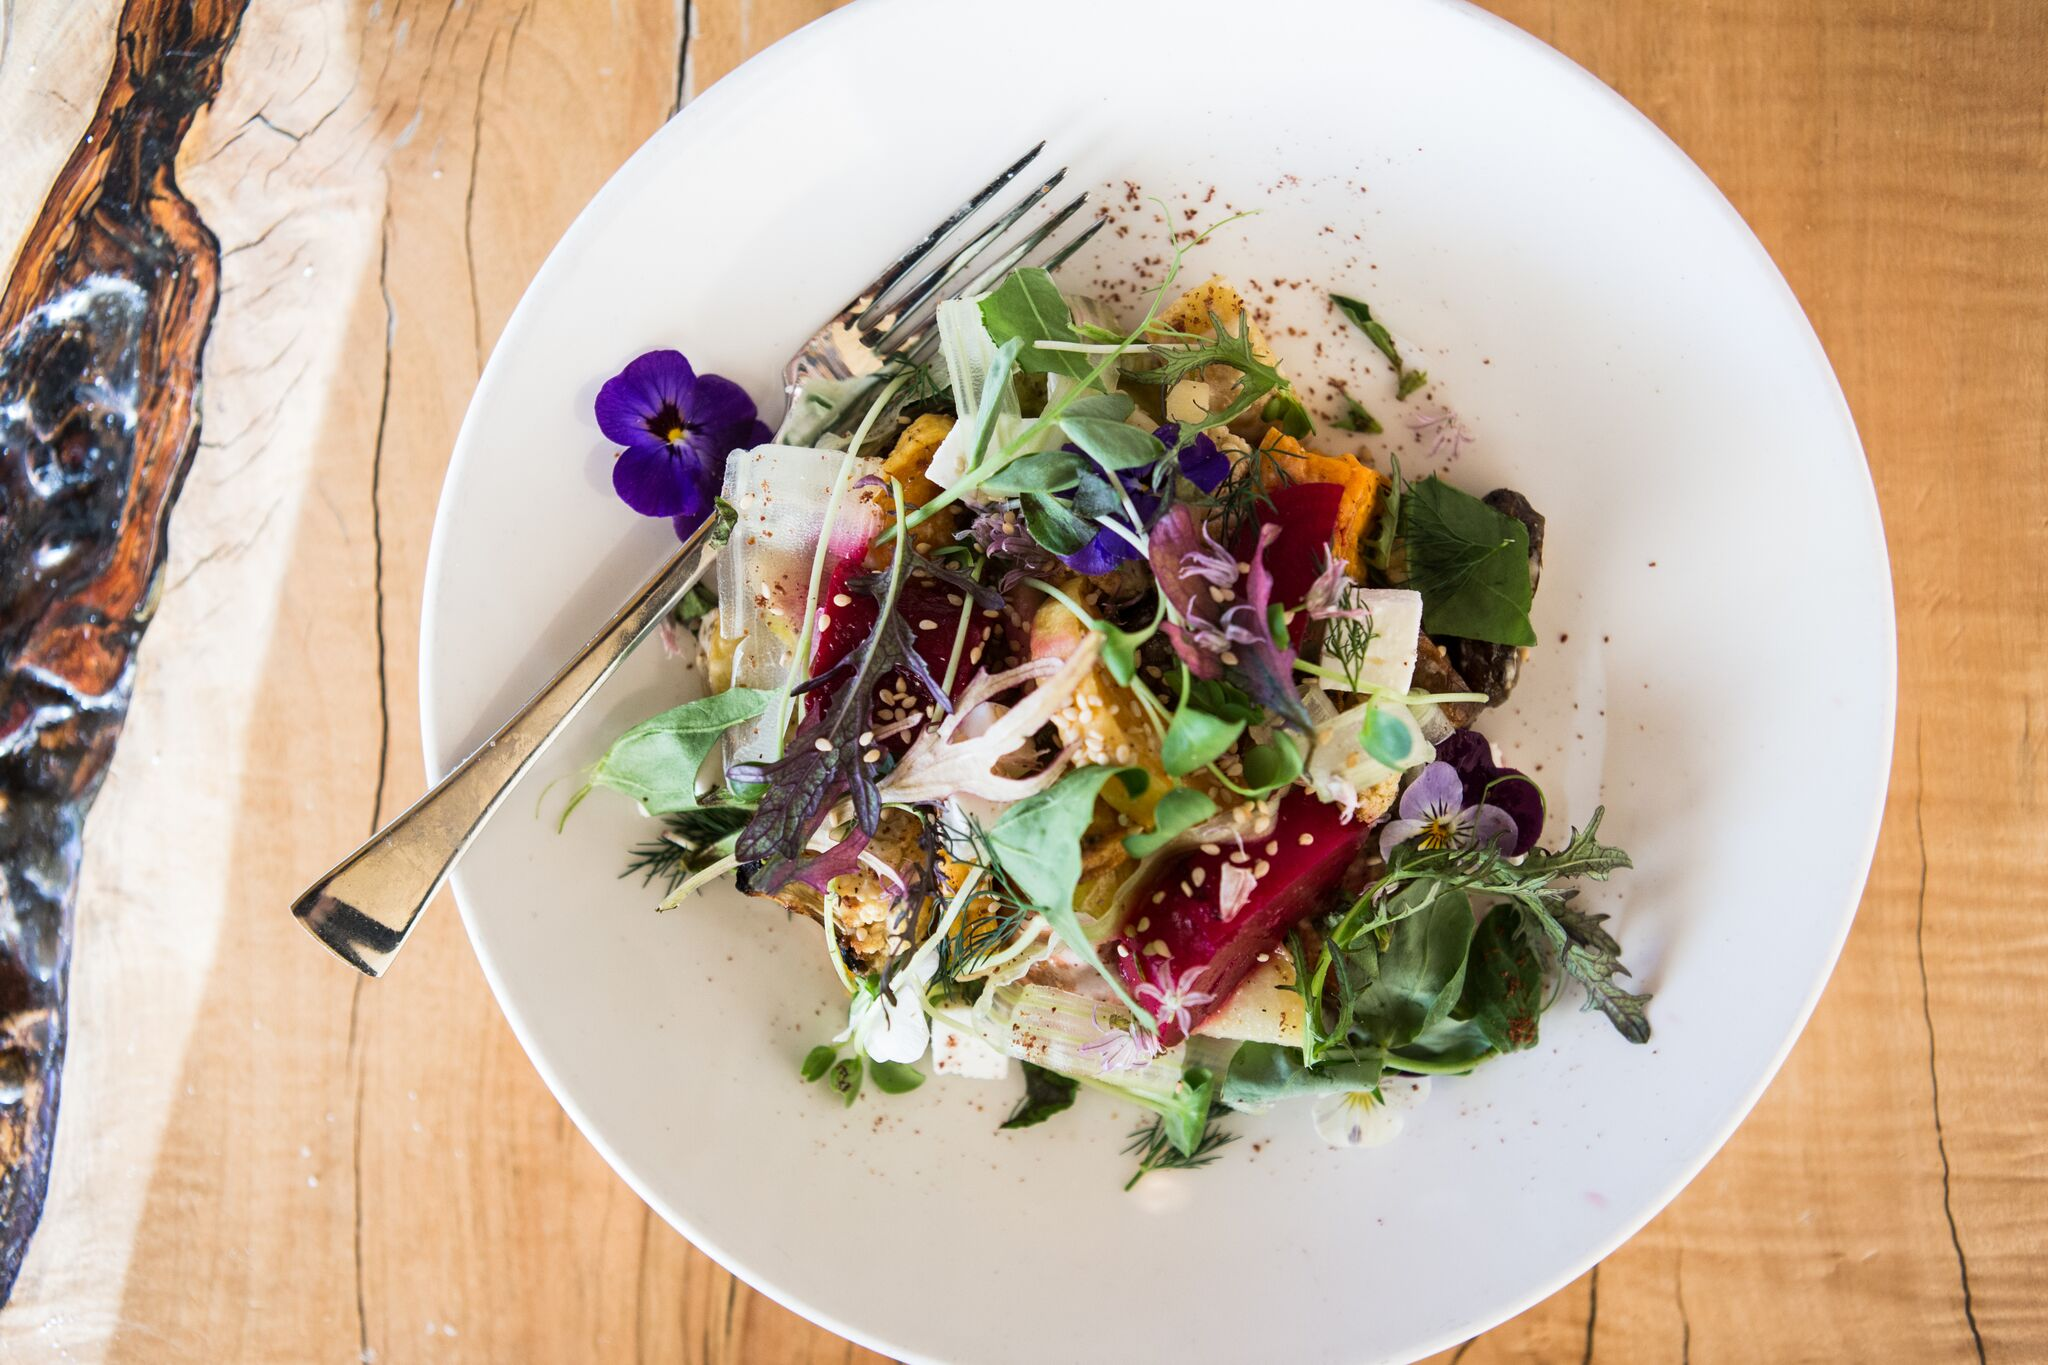 Vegetable salad at farm-to-table restaurant Local Roots